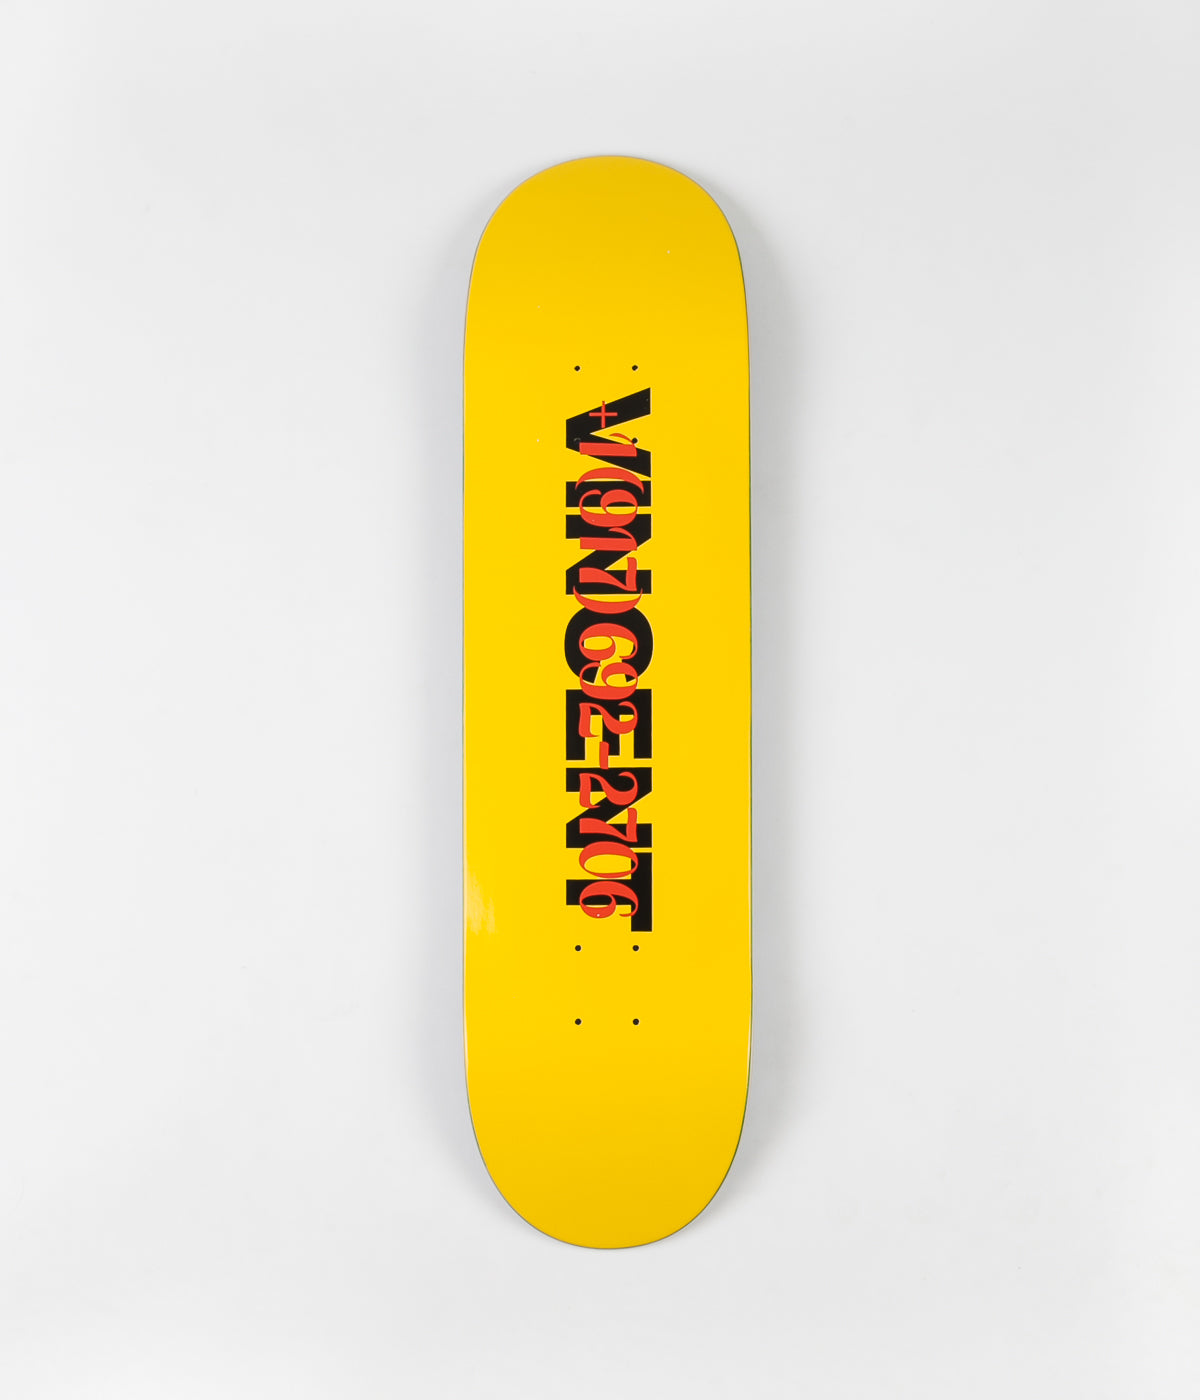 Call Me 917 Vincent Dialtone Deck - Yellow - 8.25""